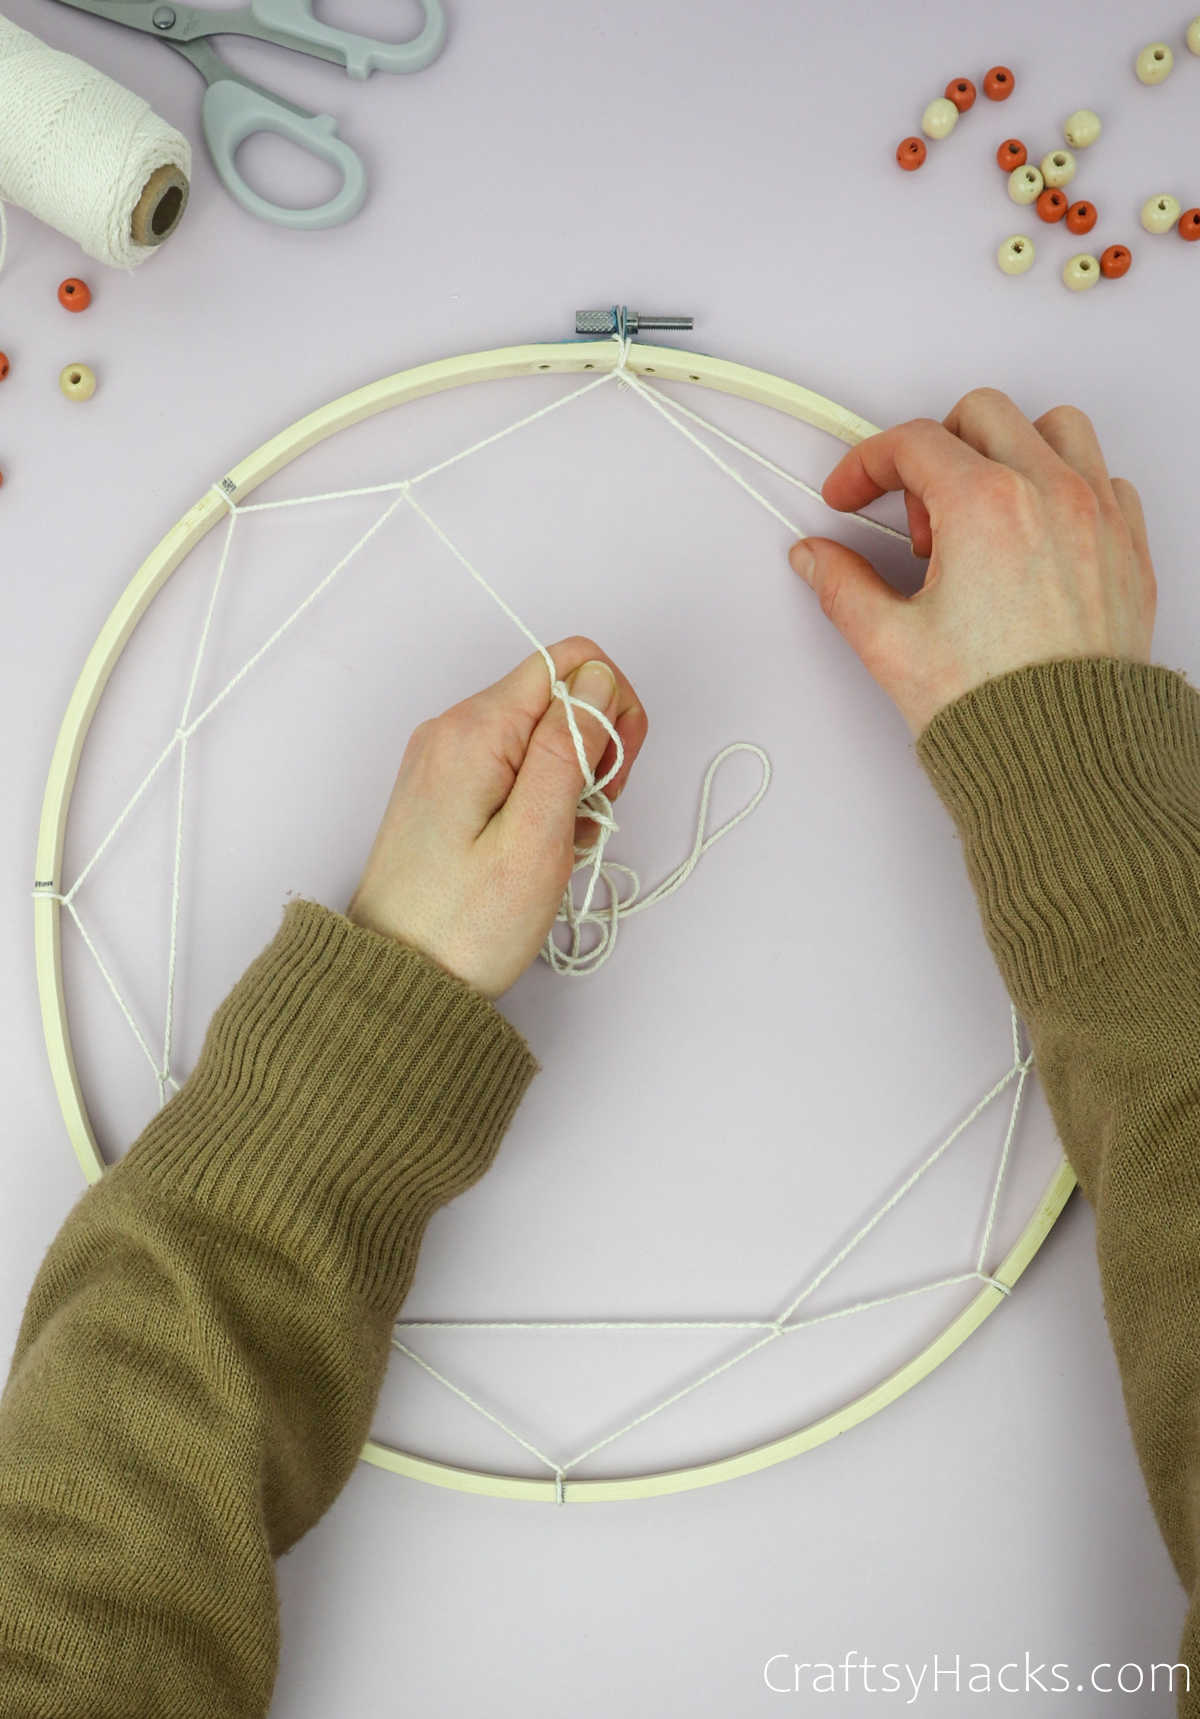 wrapping string around top string